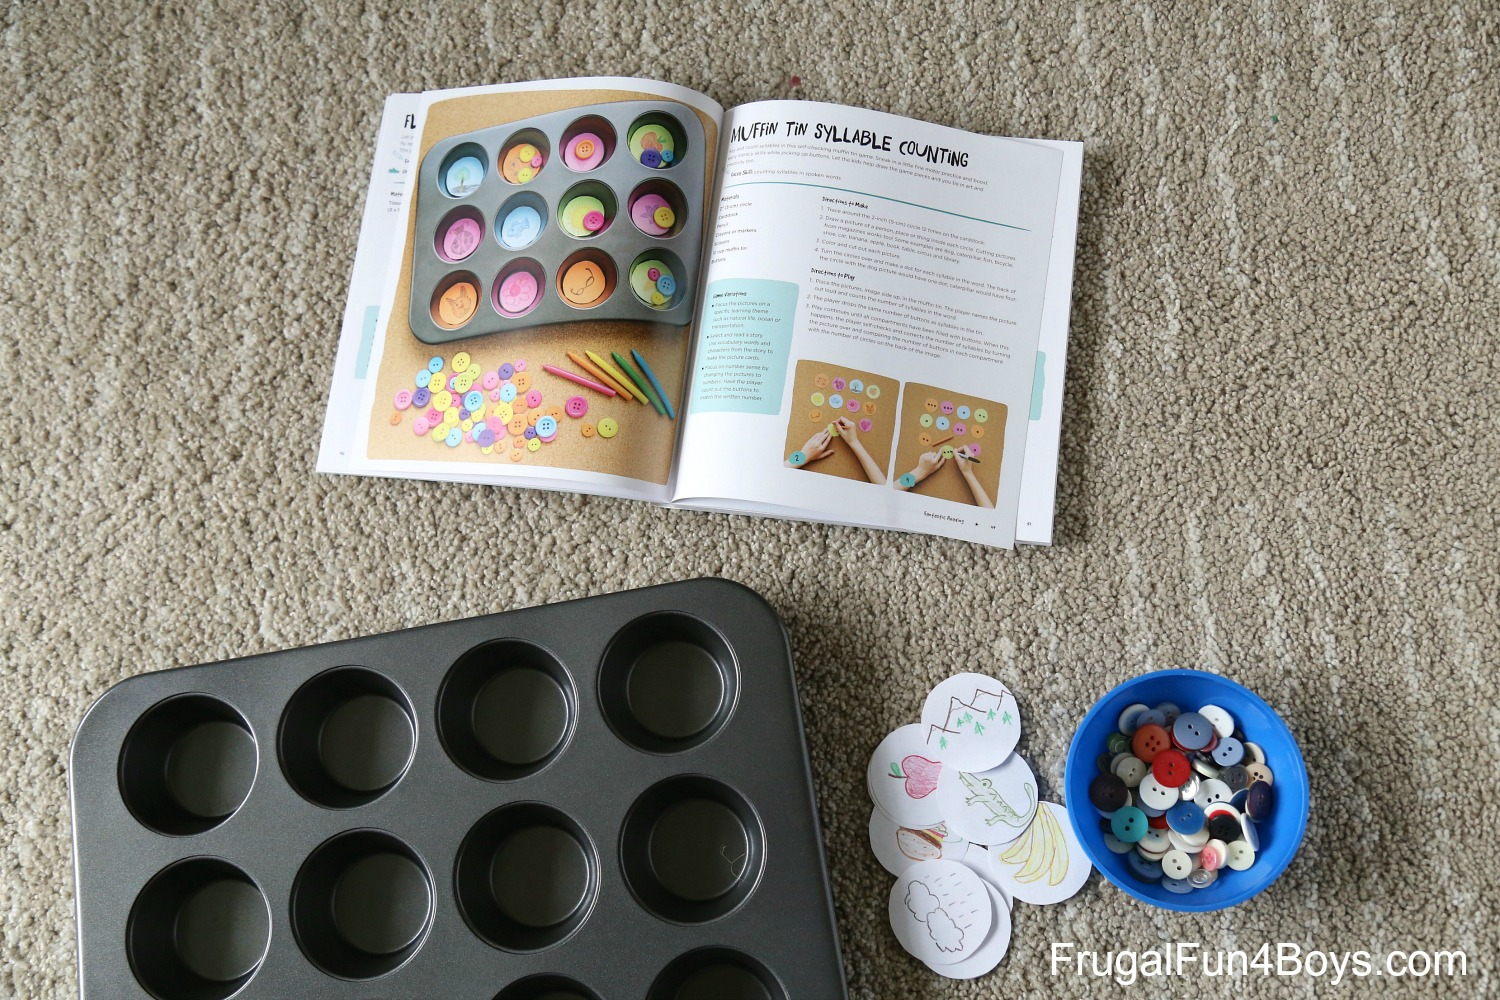 Muffin Tin Syllable Counting Game